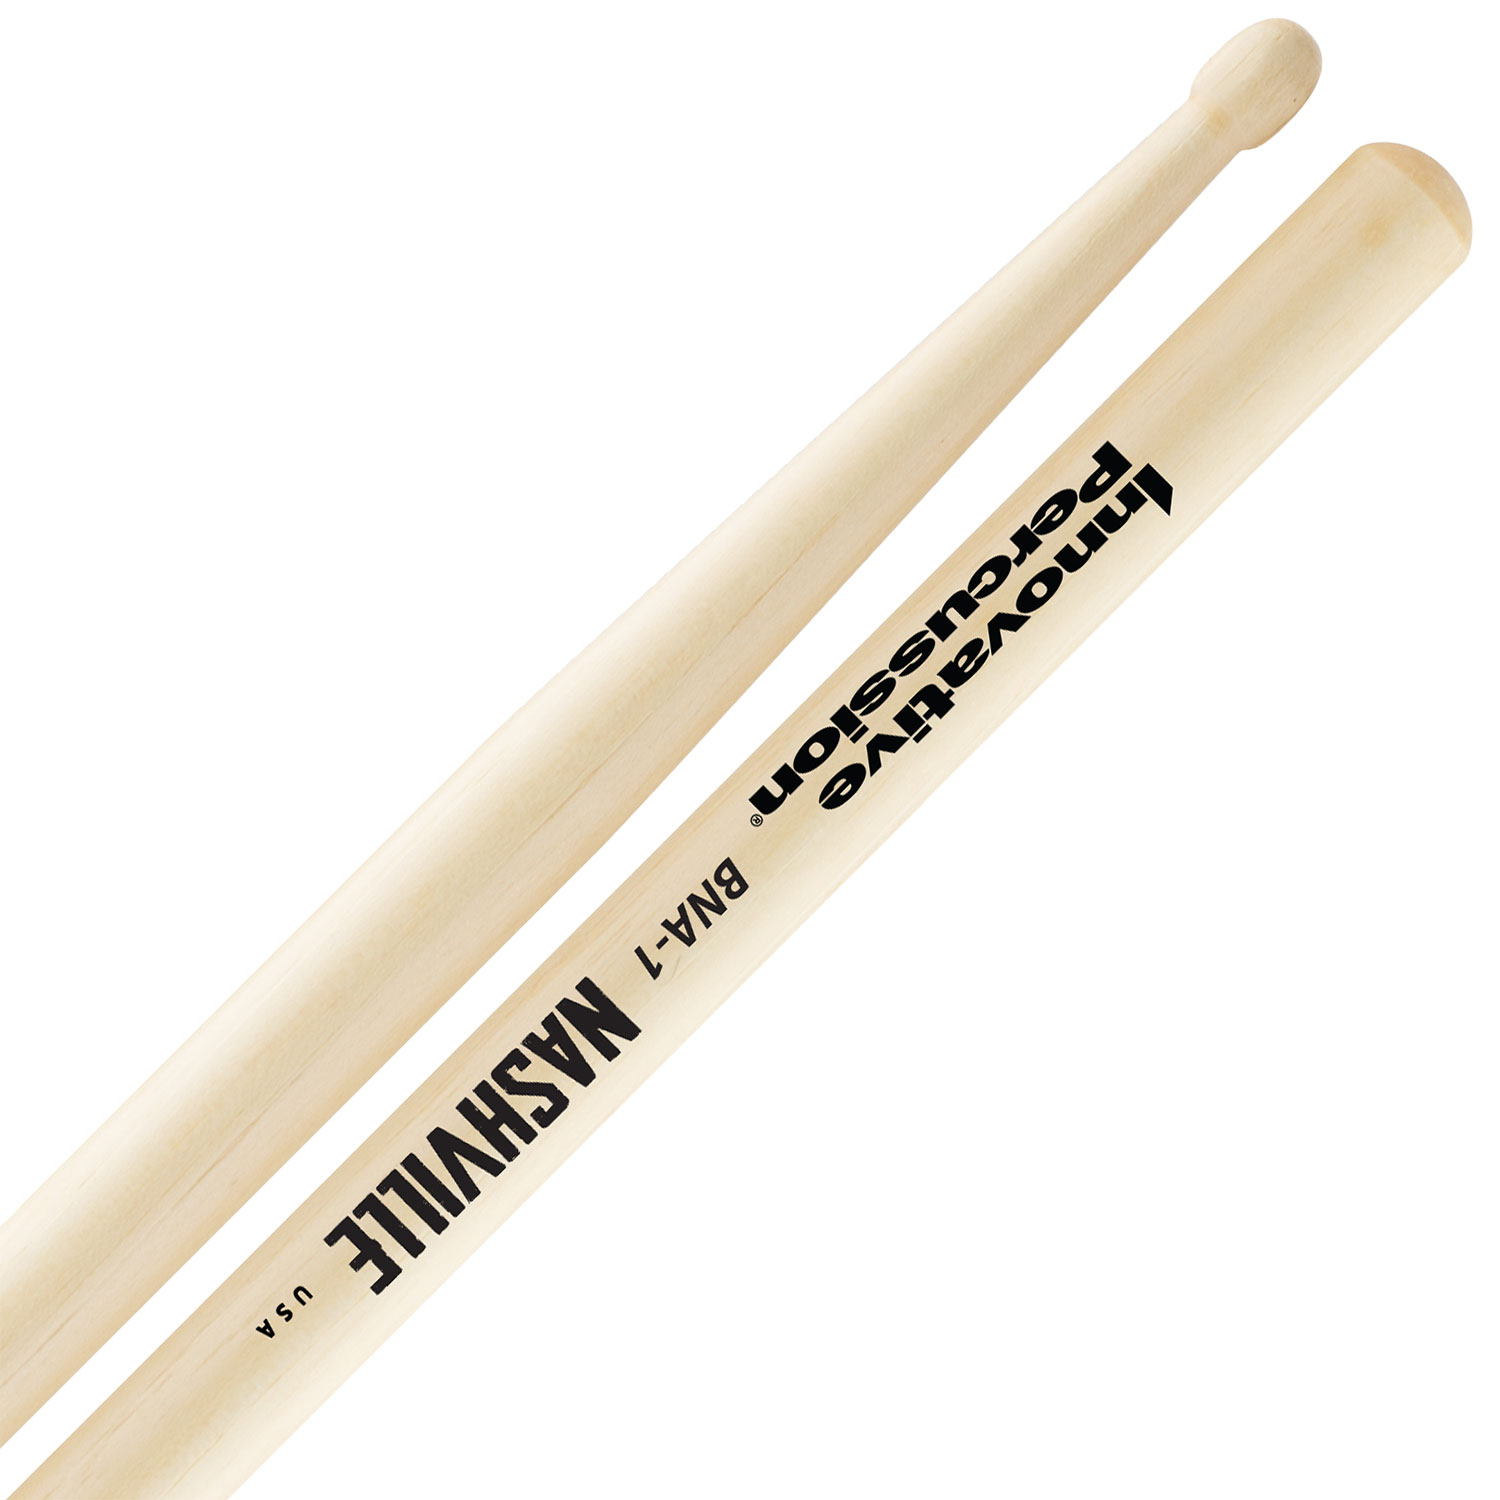 Innovative Percussion Nashville White Hickory Drumsticks